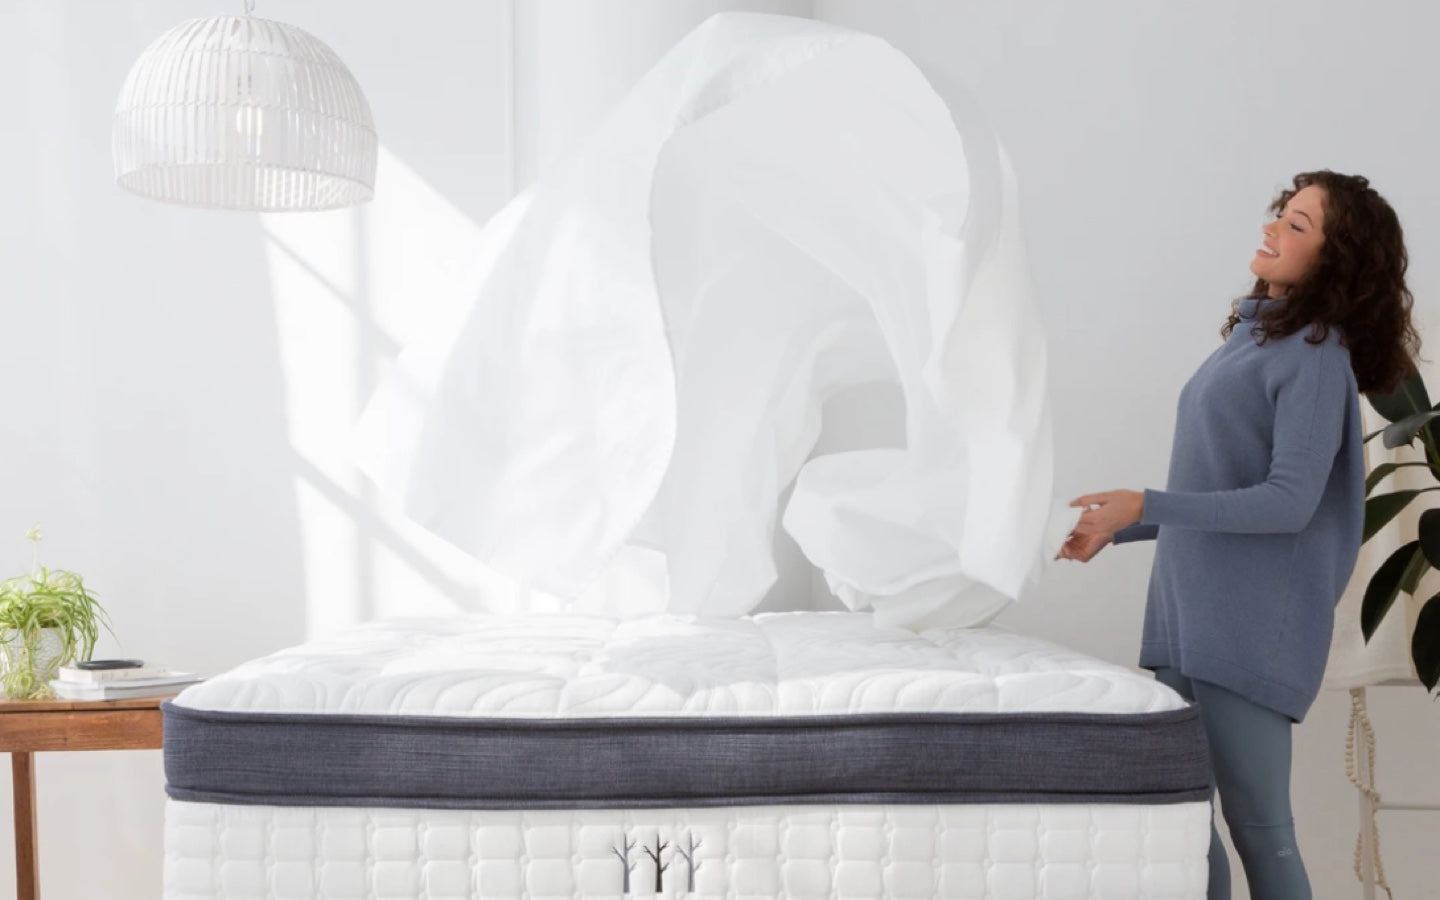 Sheets, Brentwood Home, Mattress Care